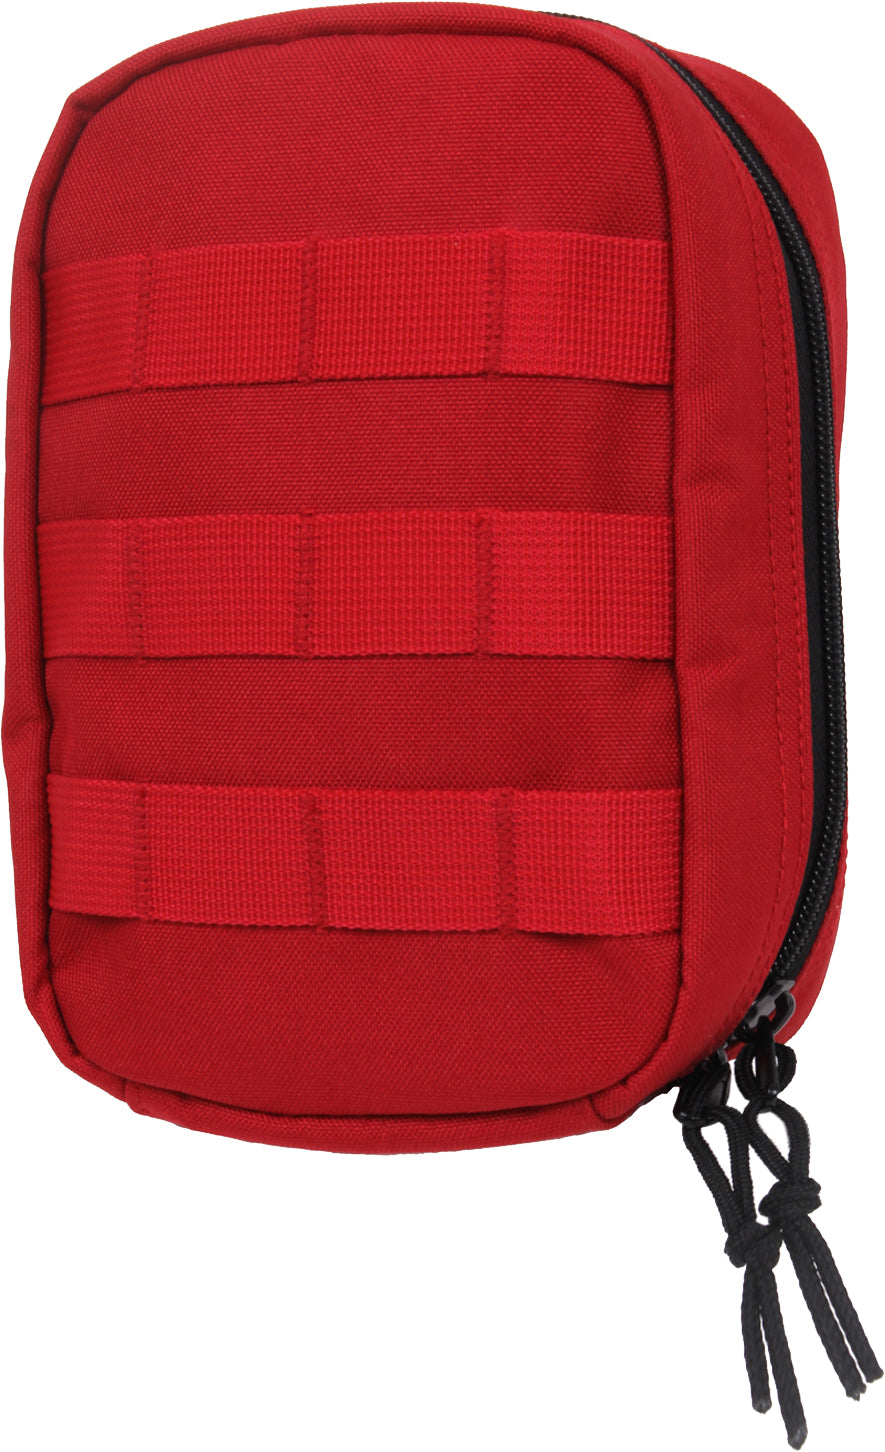 Red - M.O.L.L.E. Tactical First Aid Kit